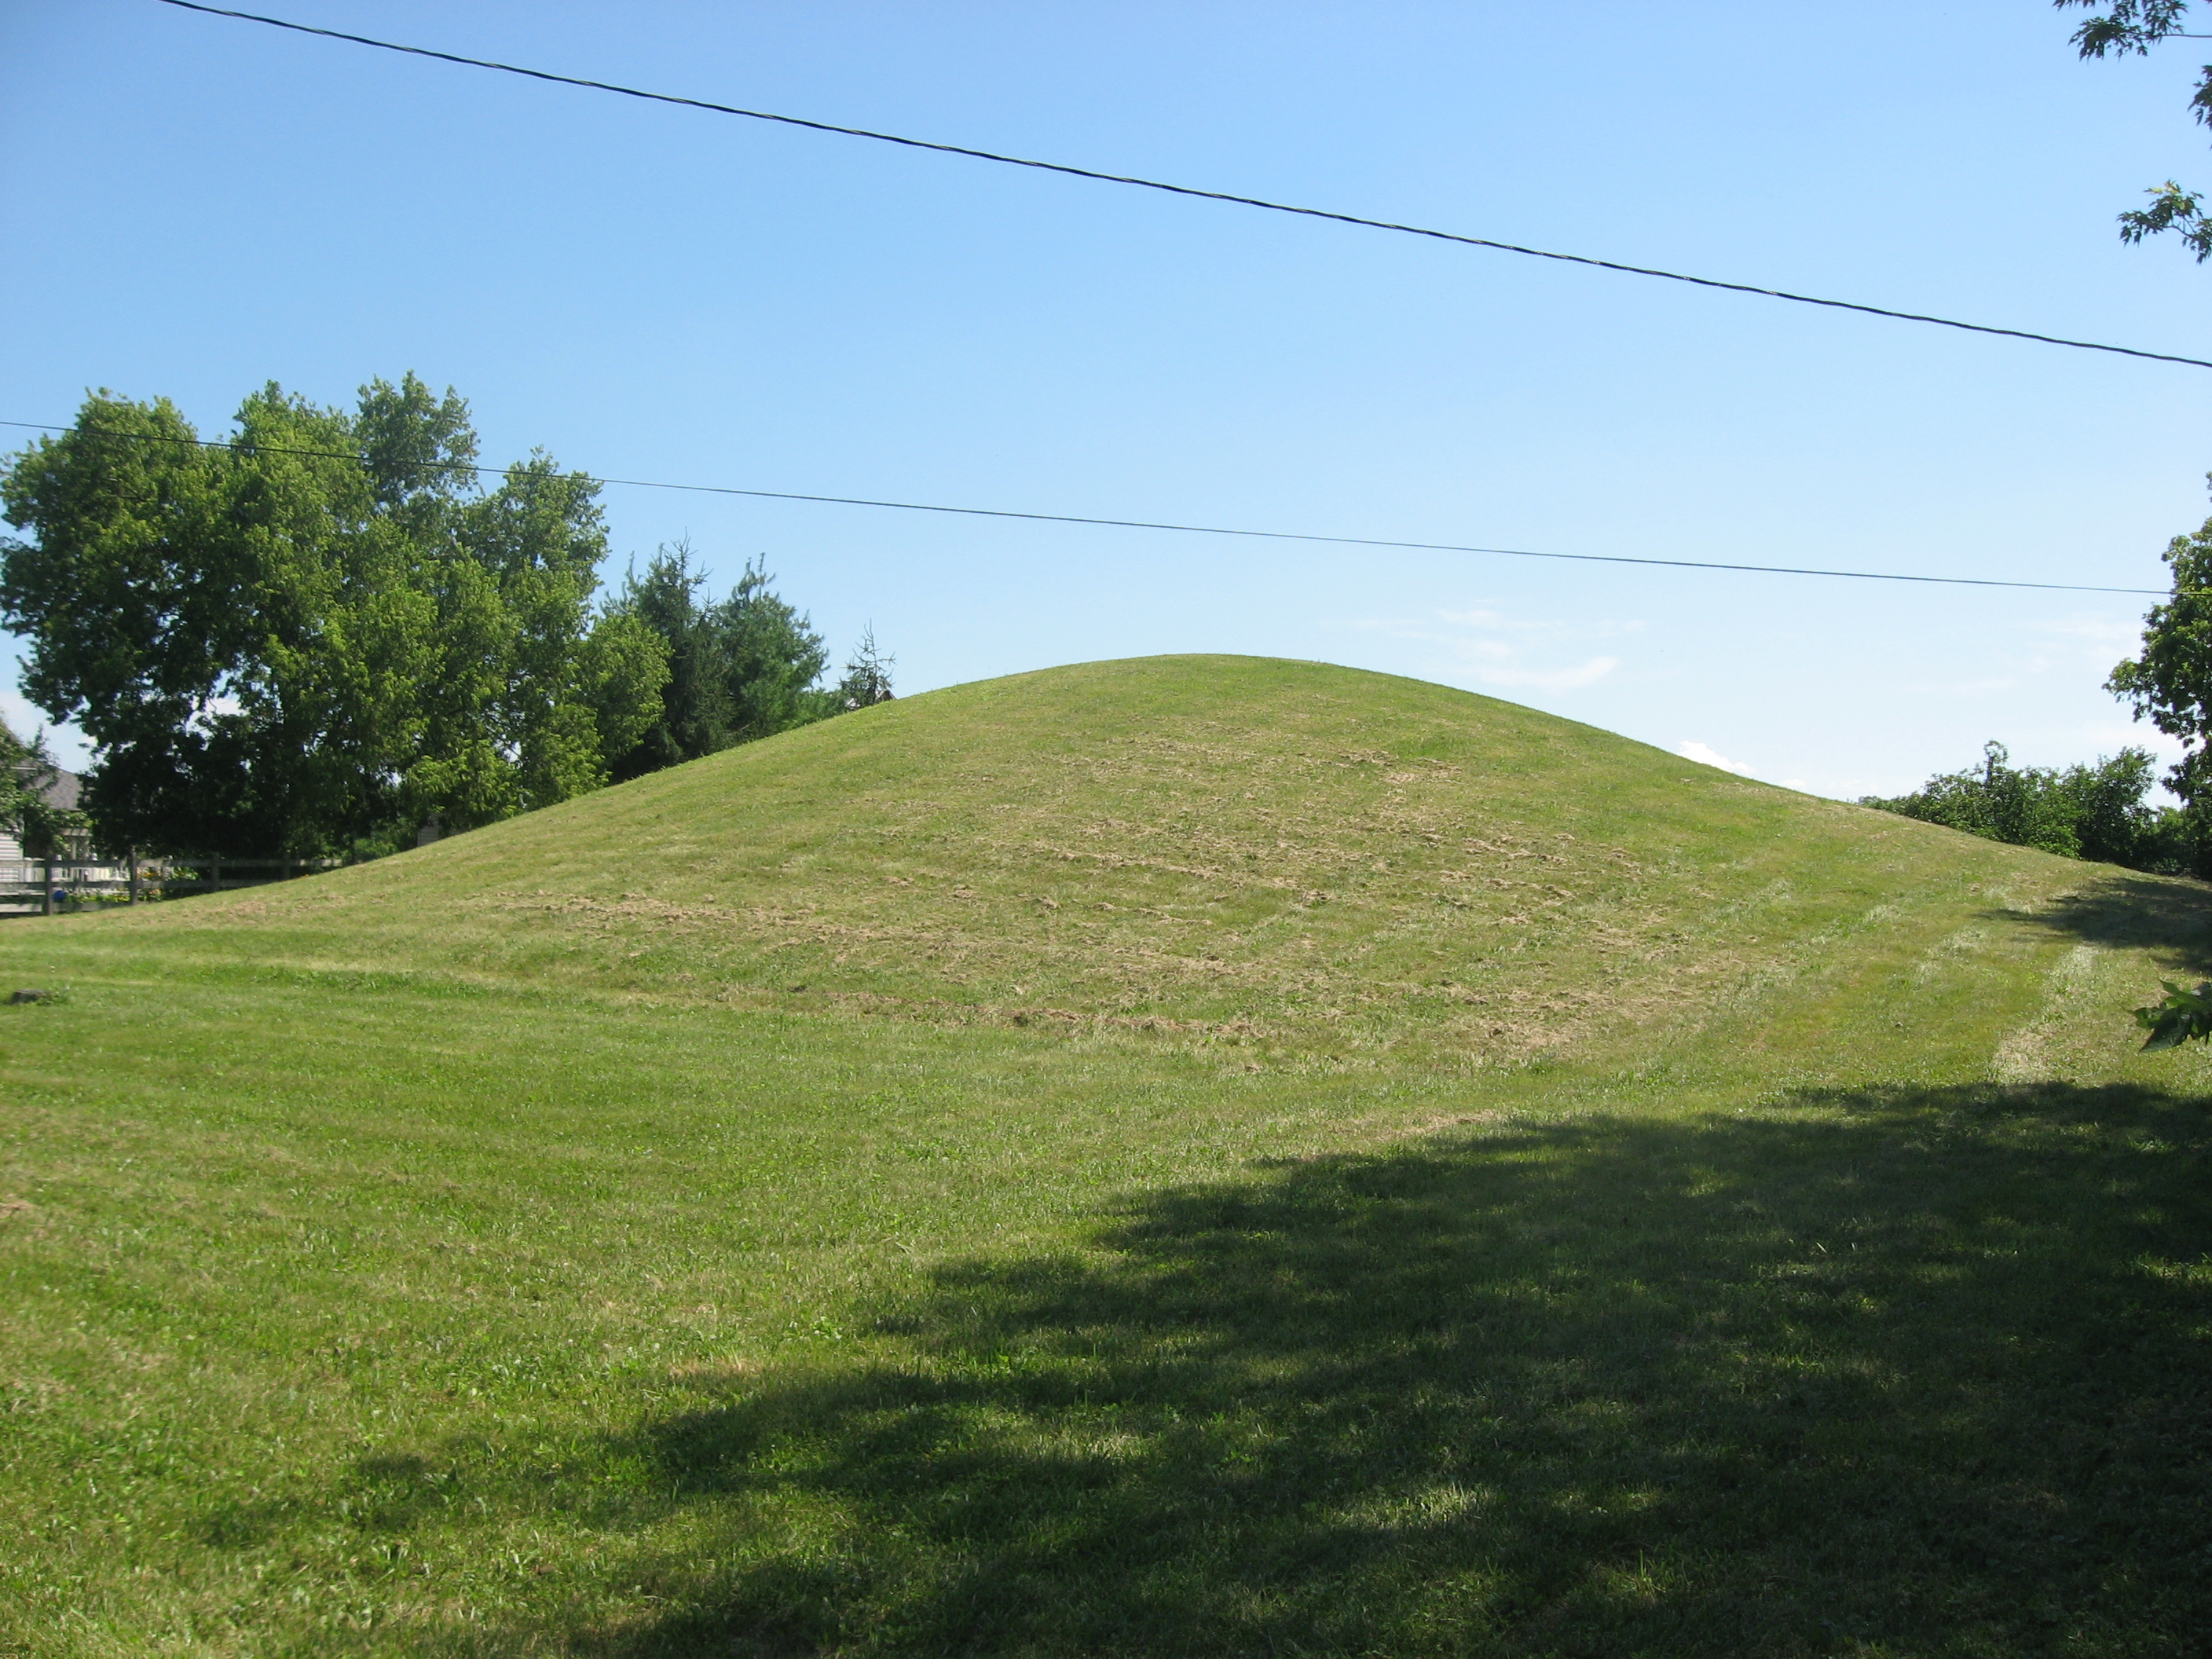 indian mound dating The archaeology of north carolina with the advent of radiocarbon dating in the 1950s members of the frutchey mound (town creek indian mound.